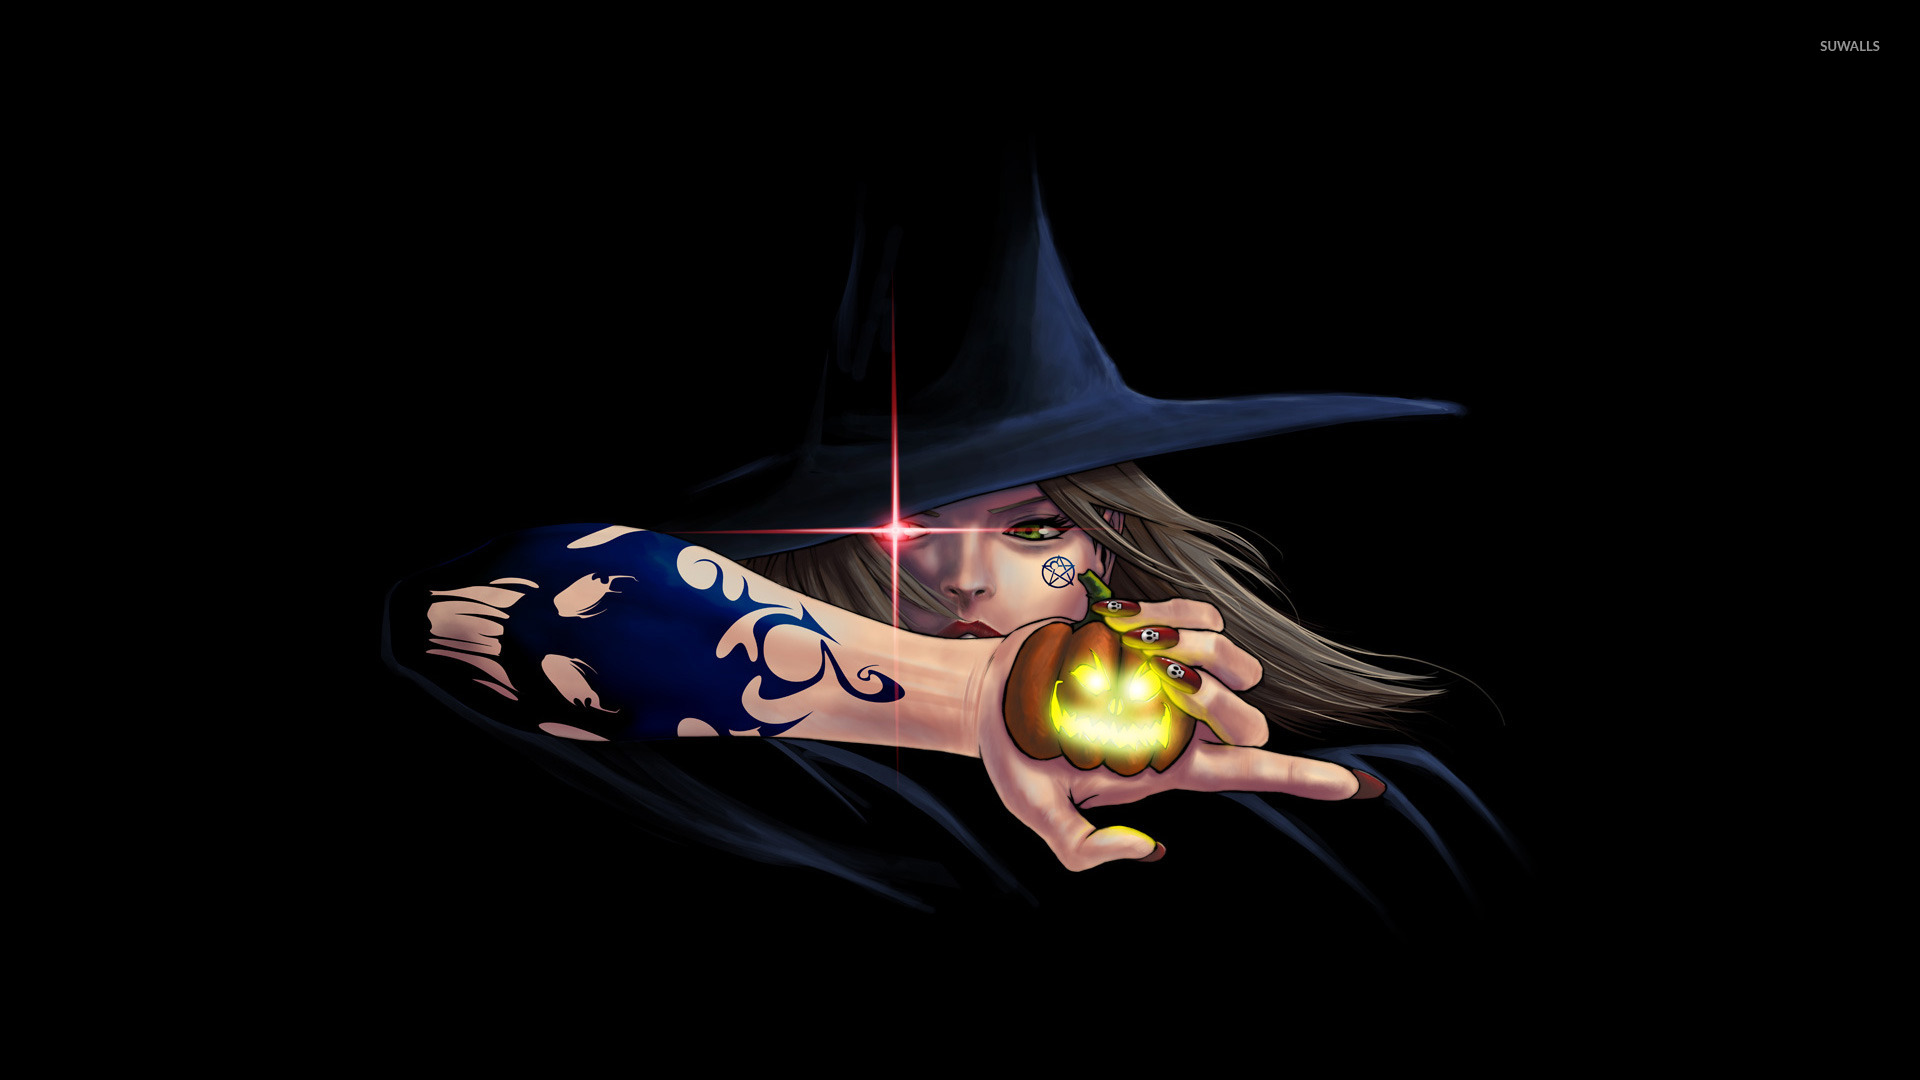 Wicked witch wallpaper   Holiday wallpapers   24367 1366x768